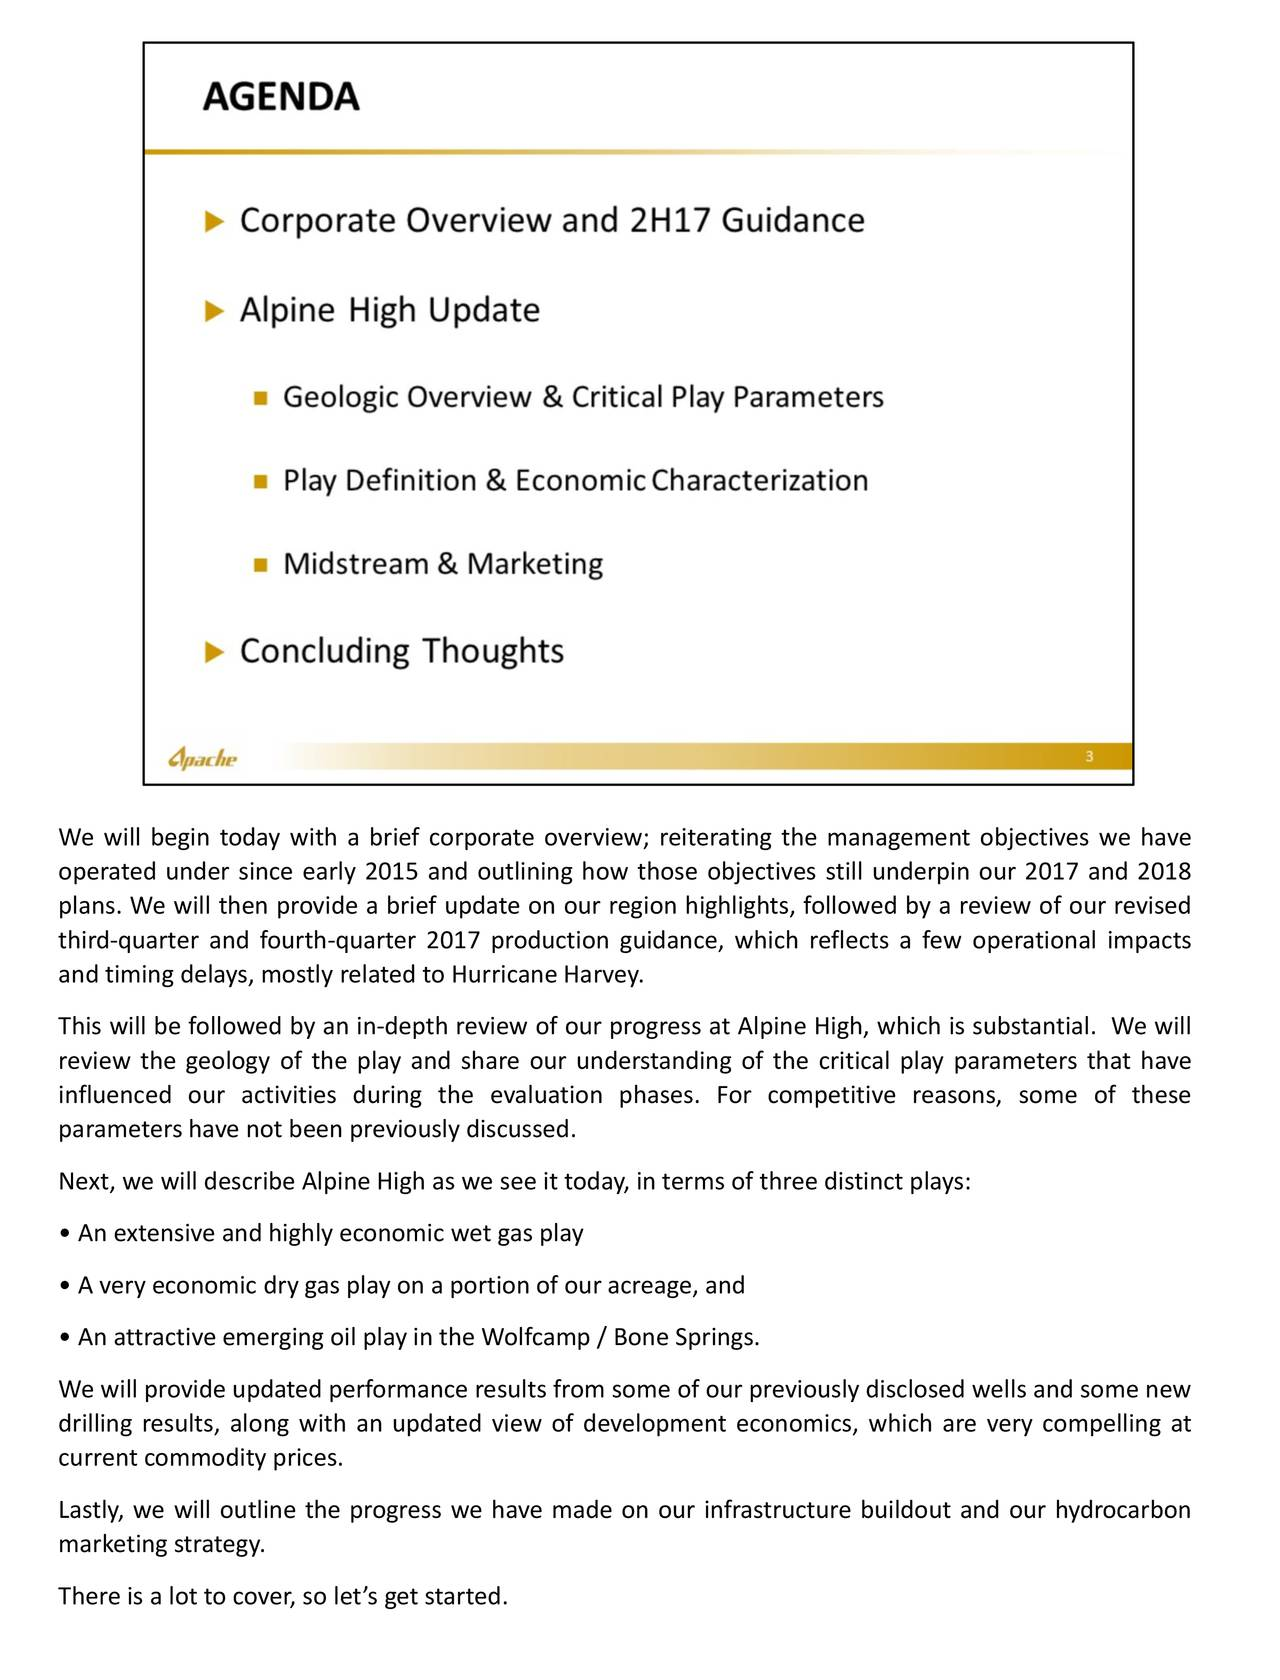 We will begin today with a brief corporate overview; reiterating the management objectives we have